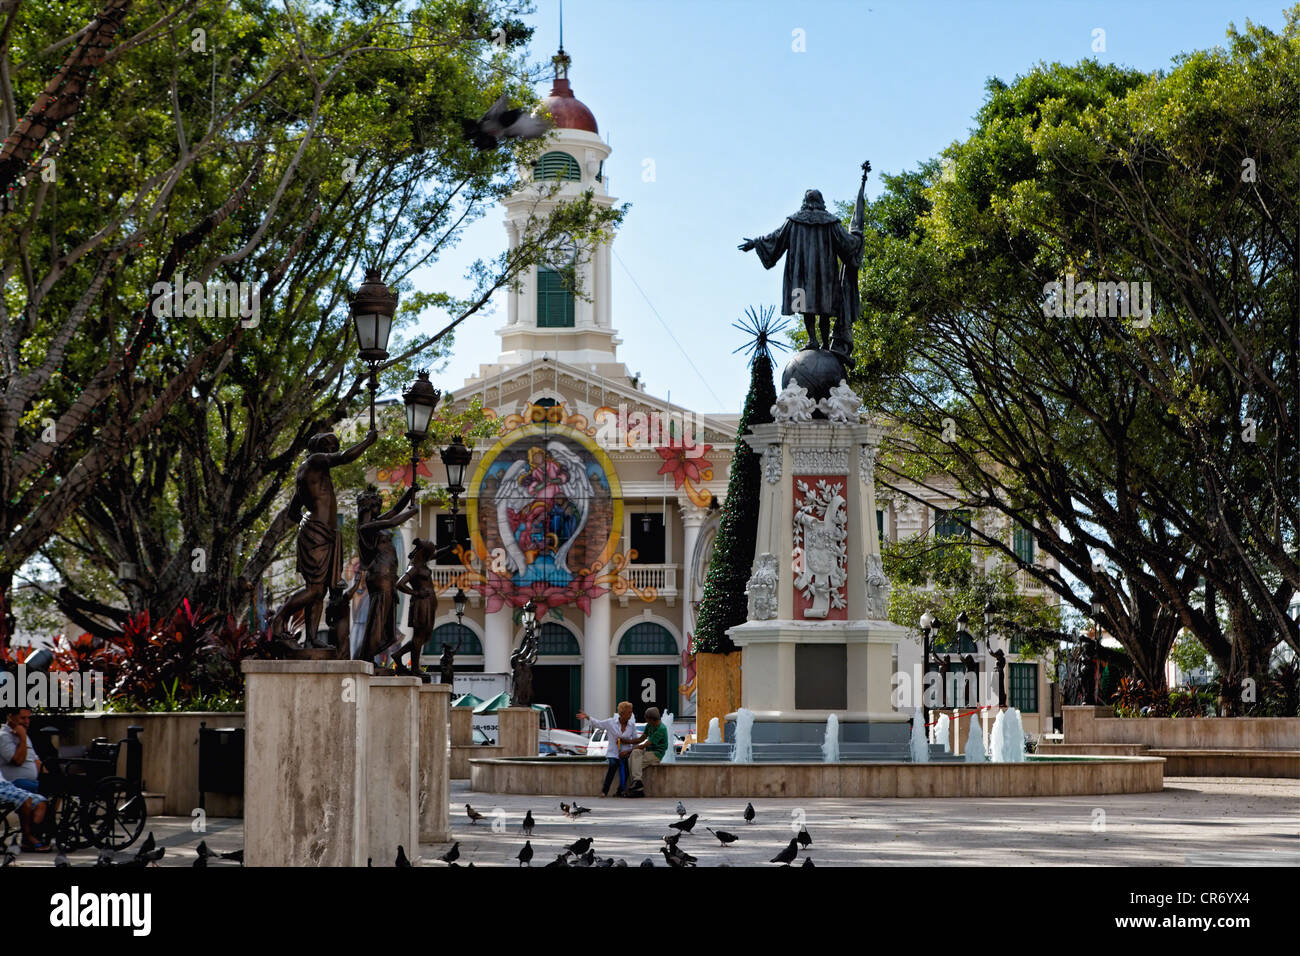 View of Plaza Colon with the City Hall and the Statue of Christopher Columbus, Mayaguez, Puerto Rico - Stock Image